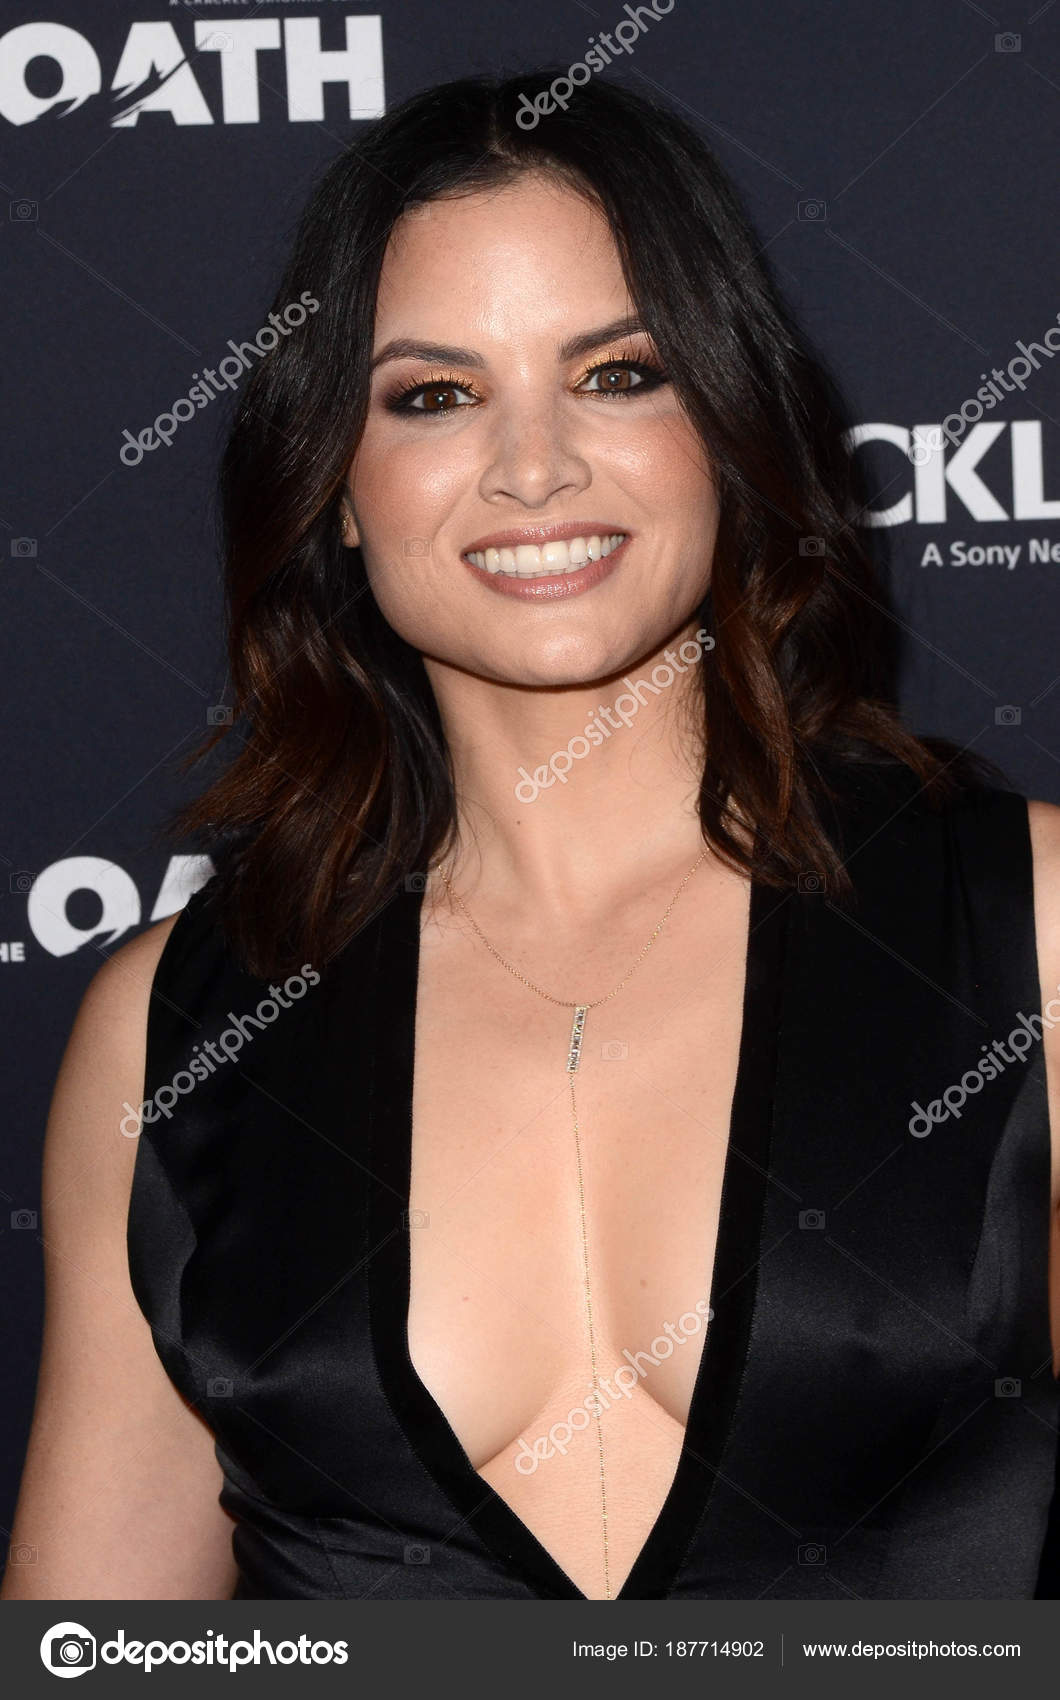 Katrina Law nudes (14 photos) Cleavage, 2017, butt